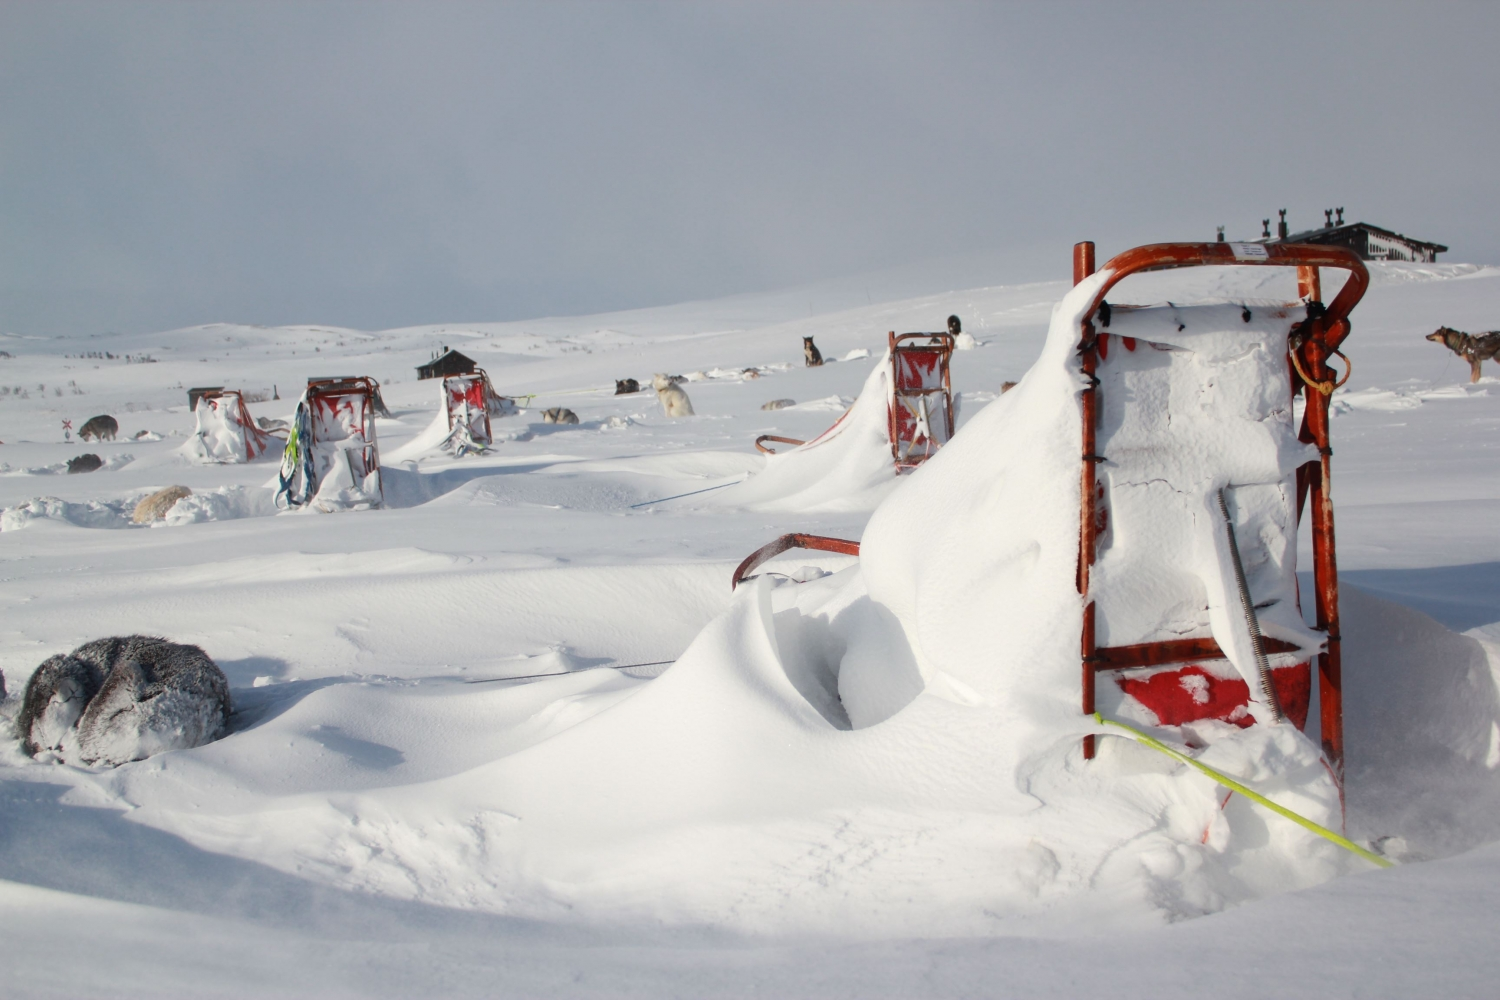 Sleds covered in snow